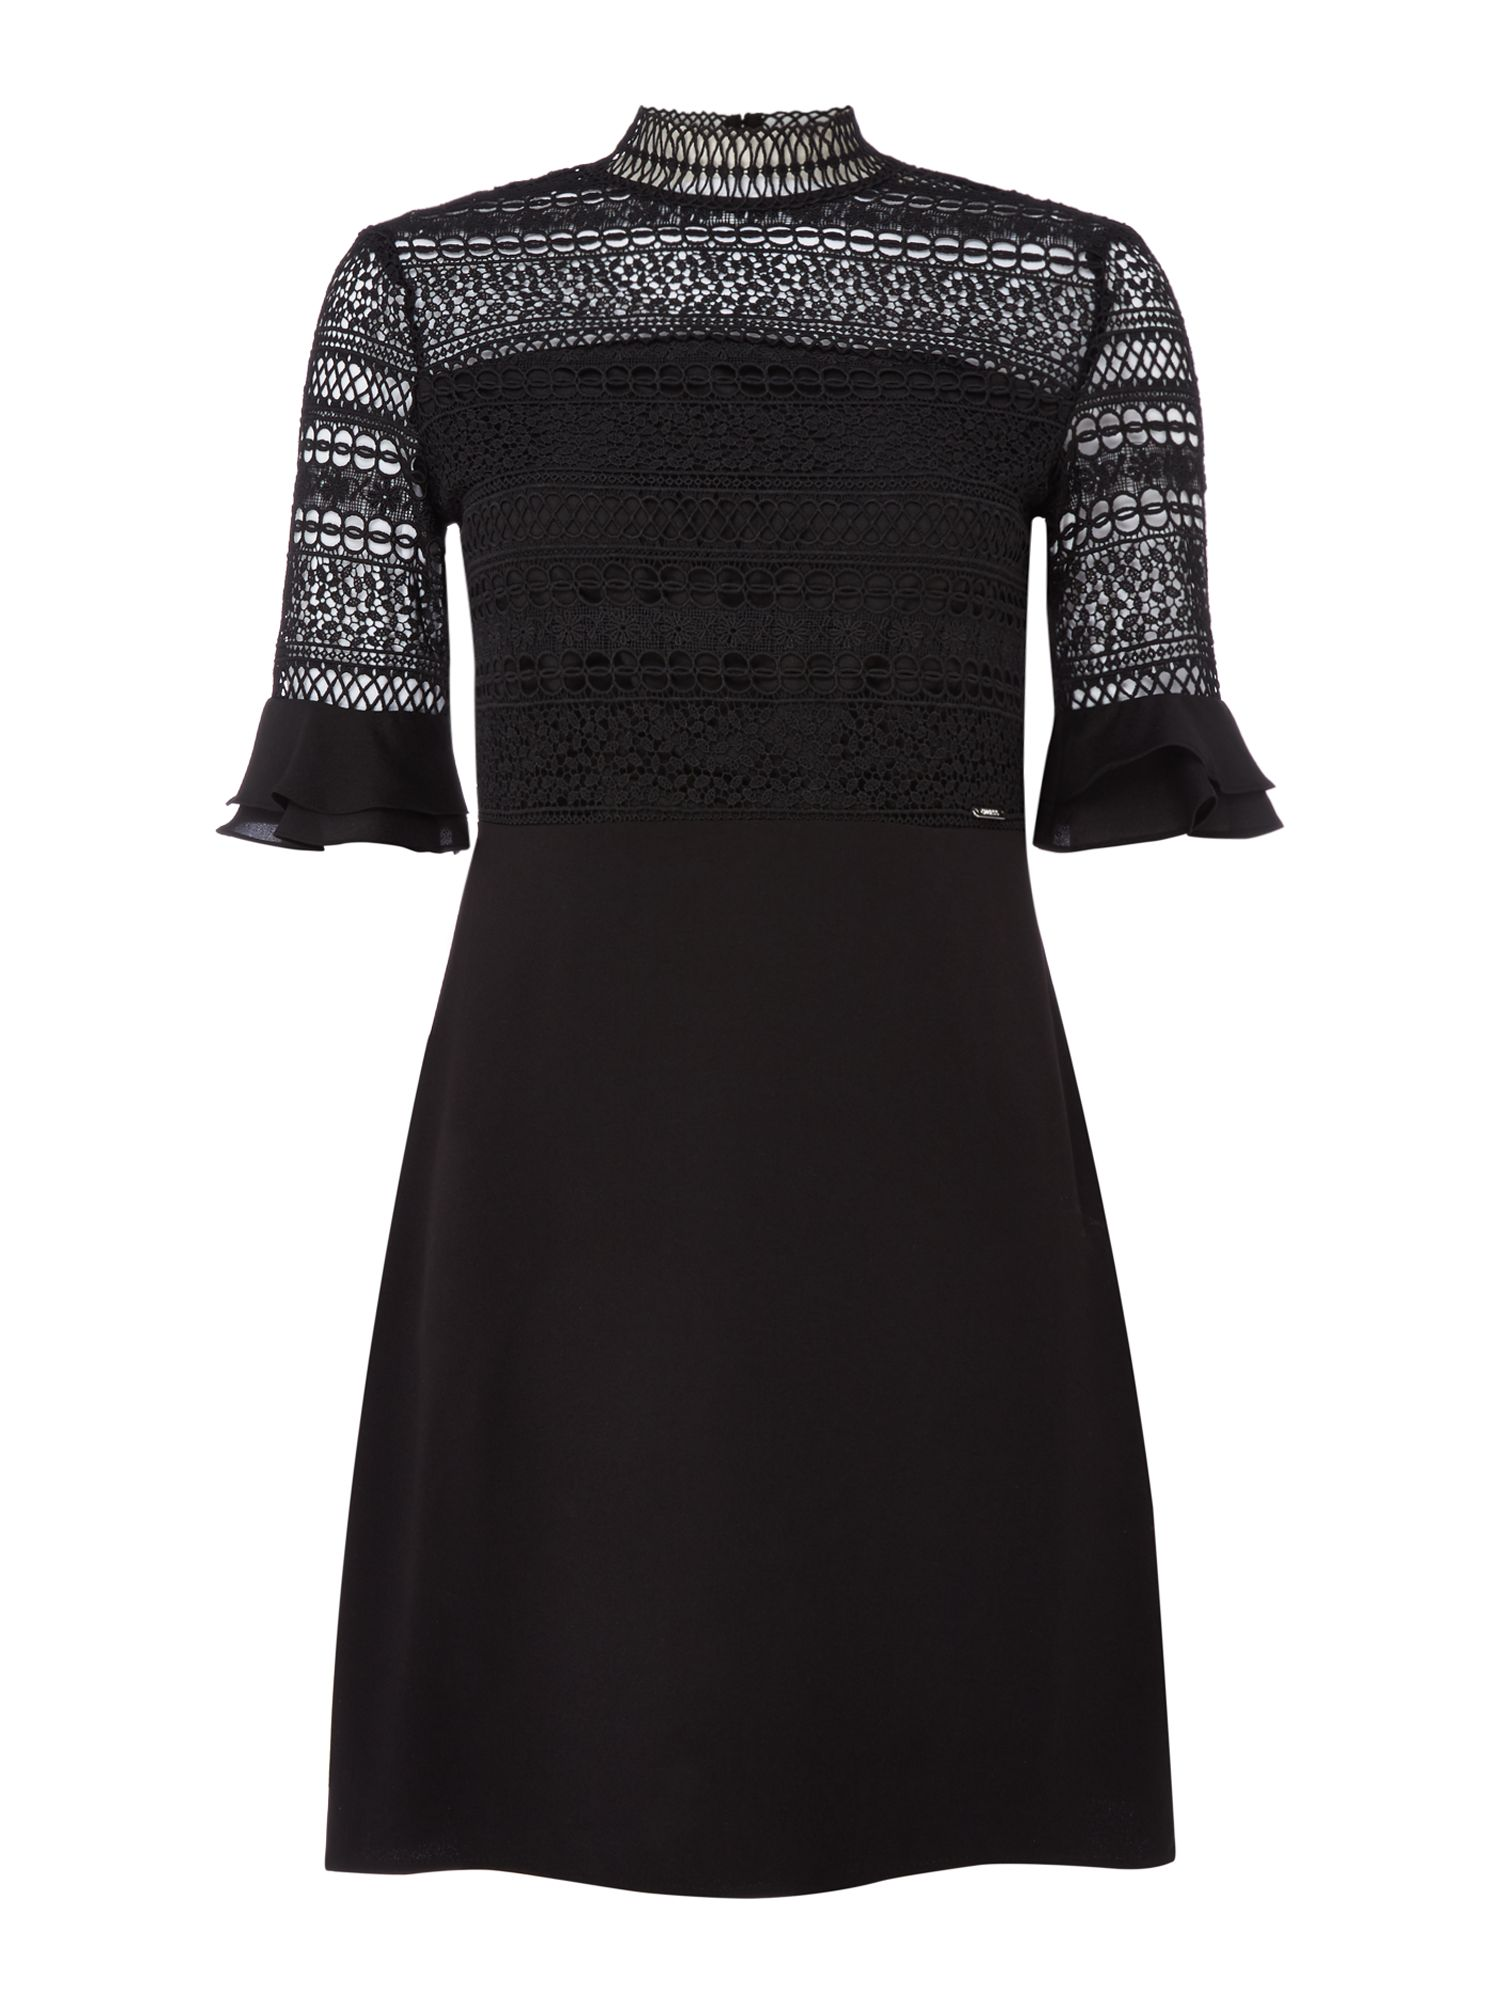 Guess 34 sleeve lace fit and flare dress, Black